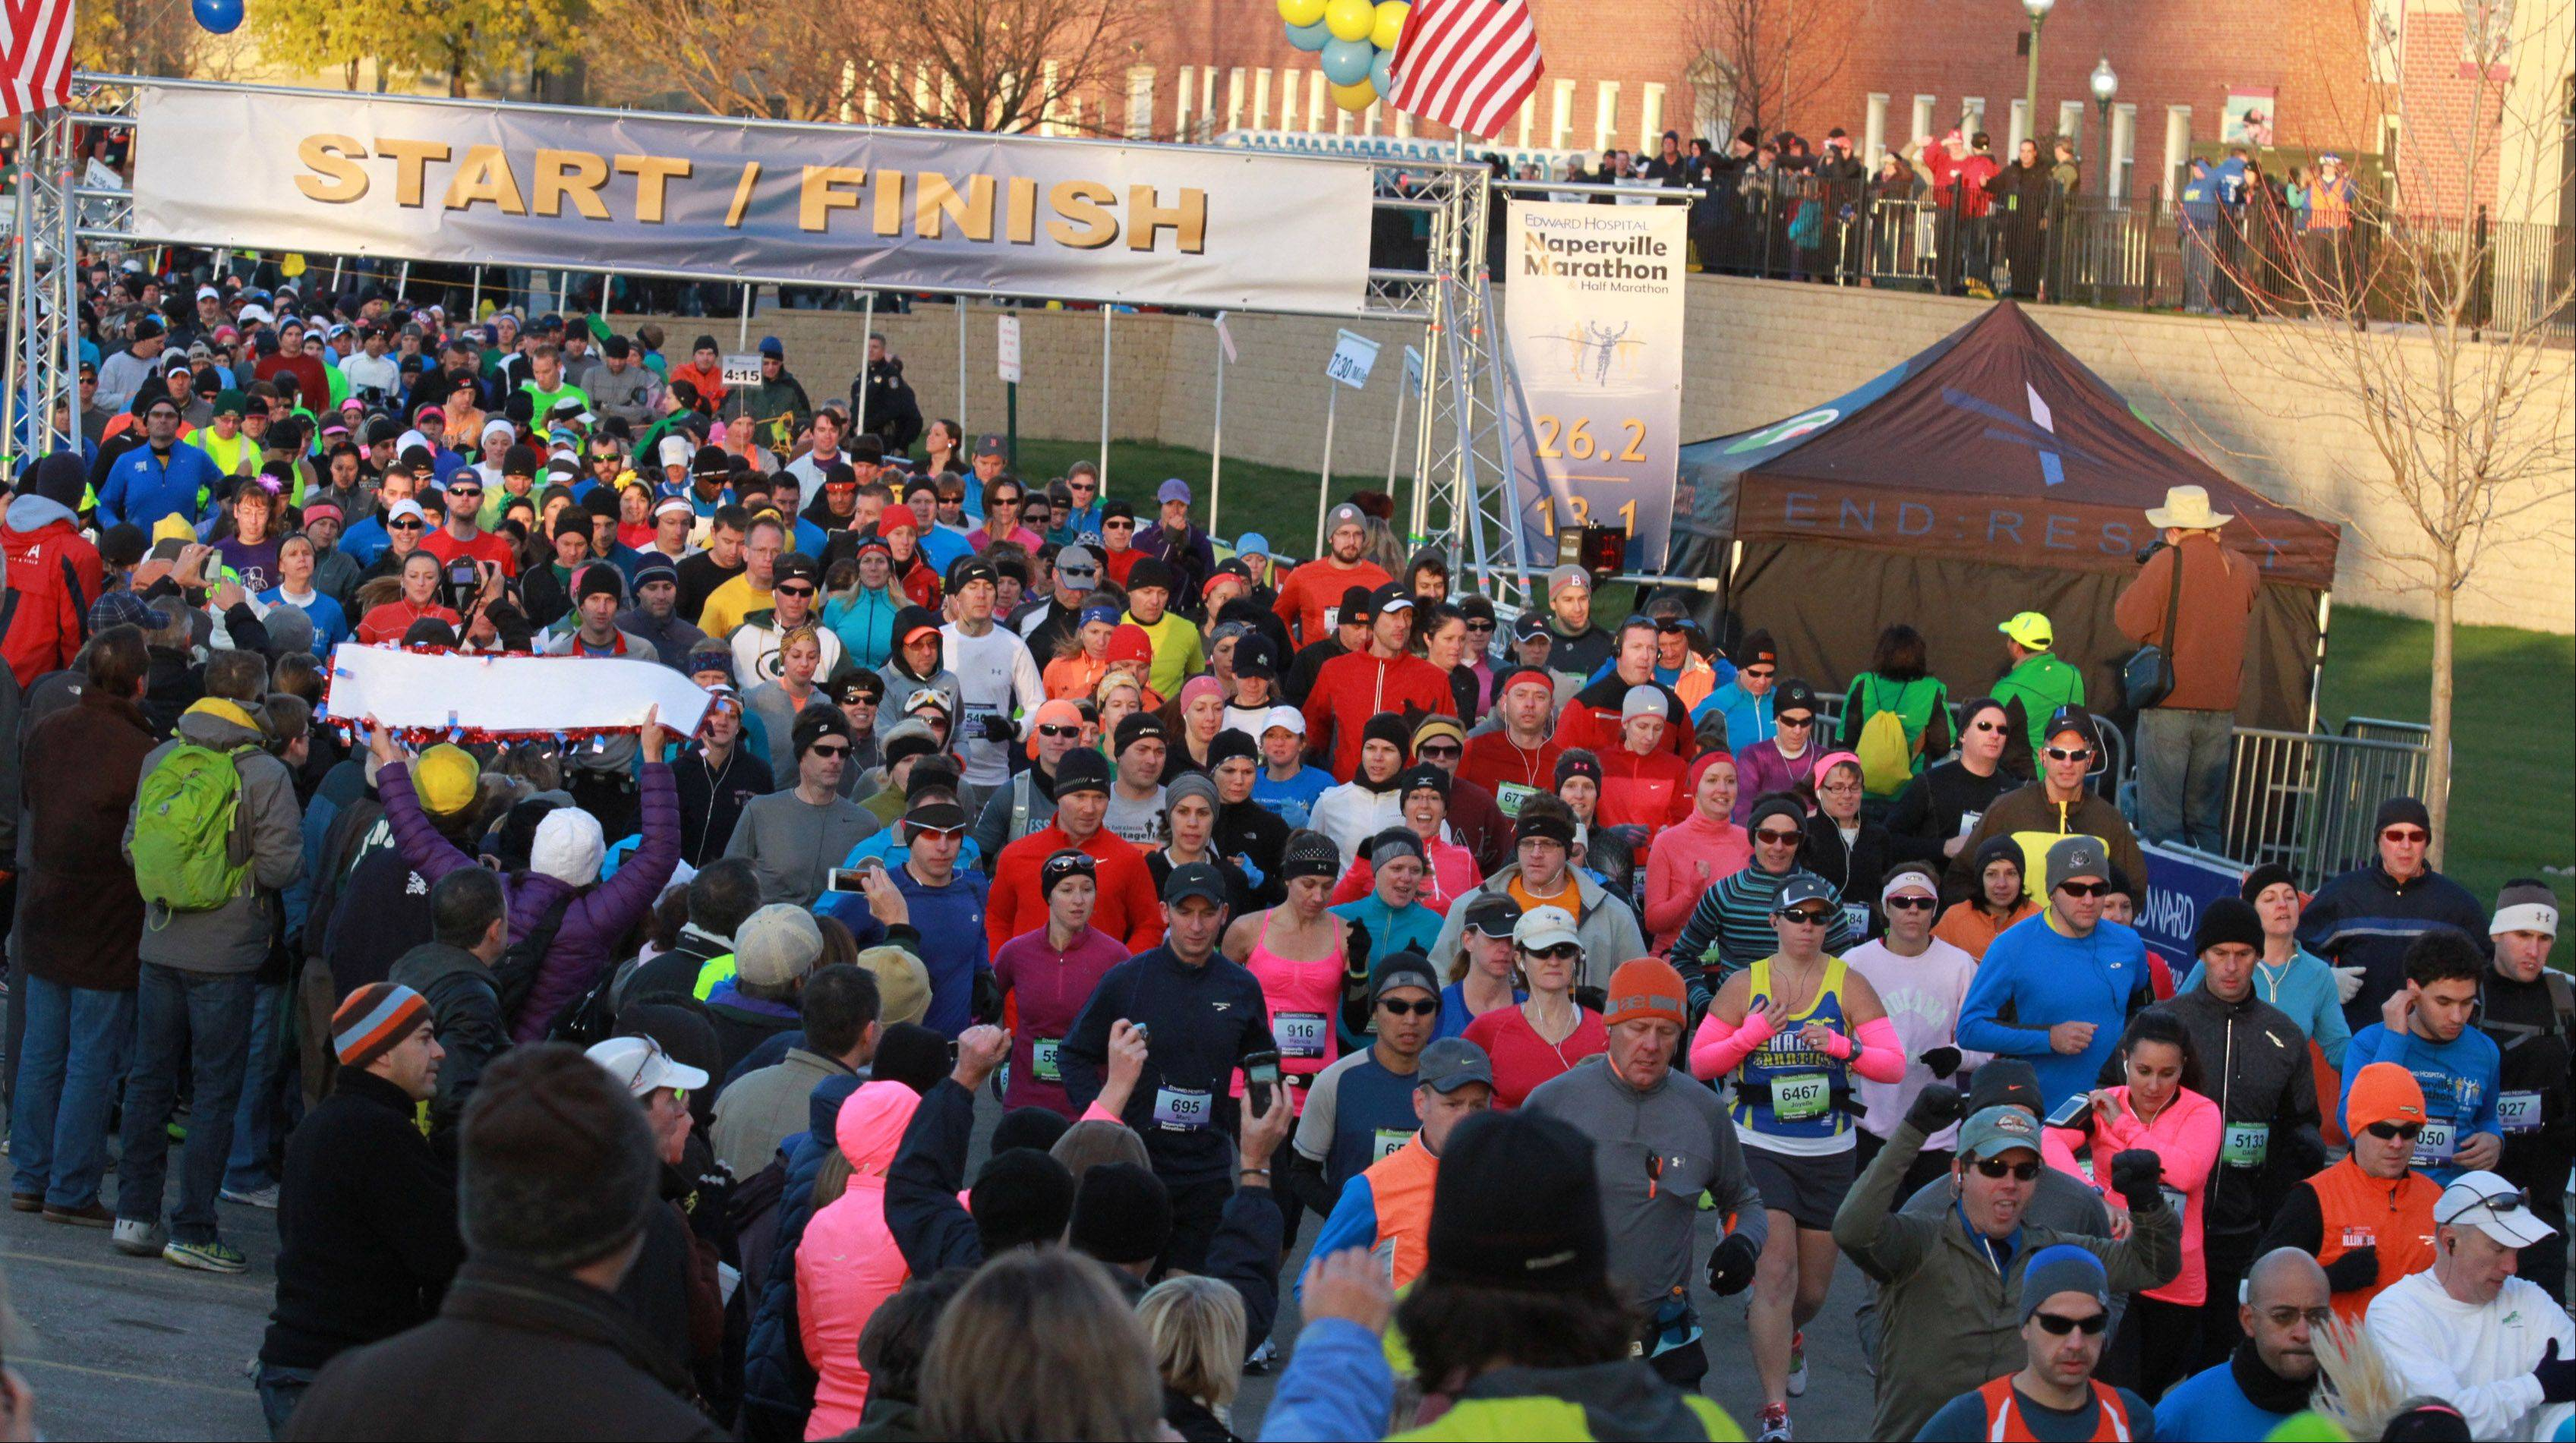 The inaugural Edward Hospital Naperville Marathon and Half Marathon steps off Sunday with 2,562 competitors running in the two races. Organizers said cold morning temperatures apparently kept hundreds of registered runners away.